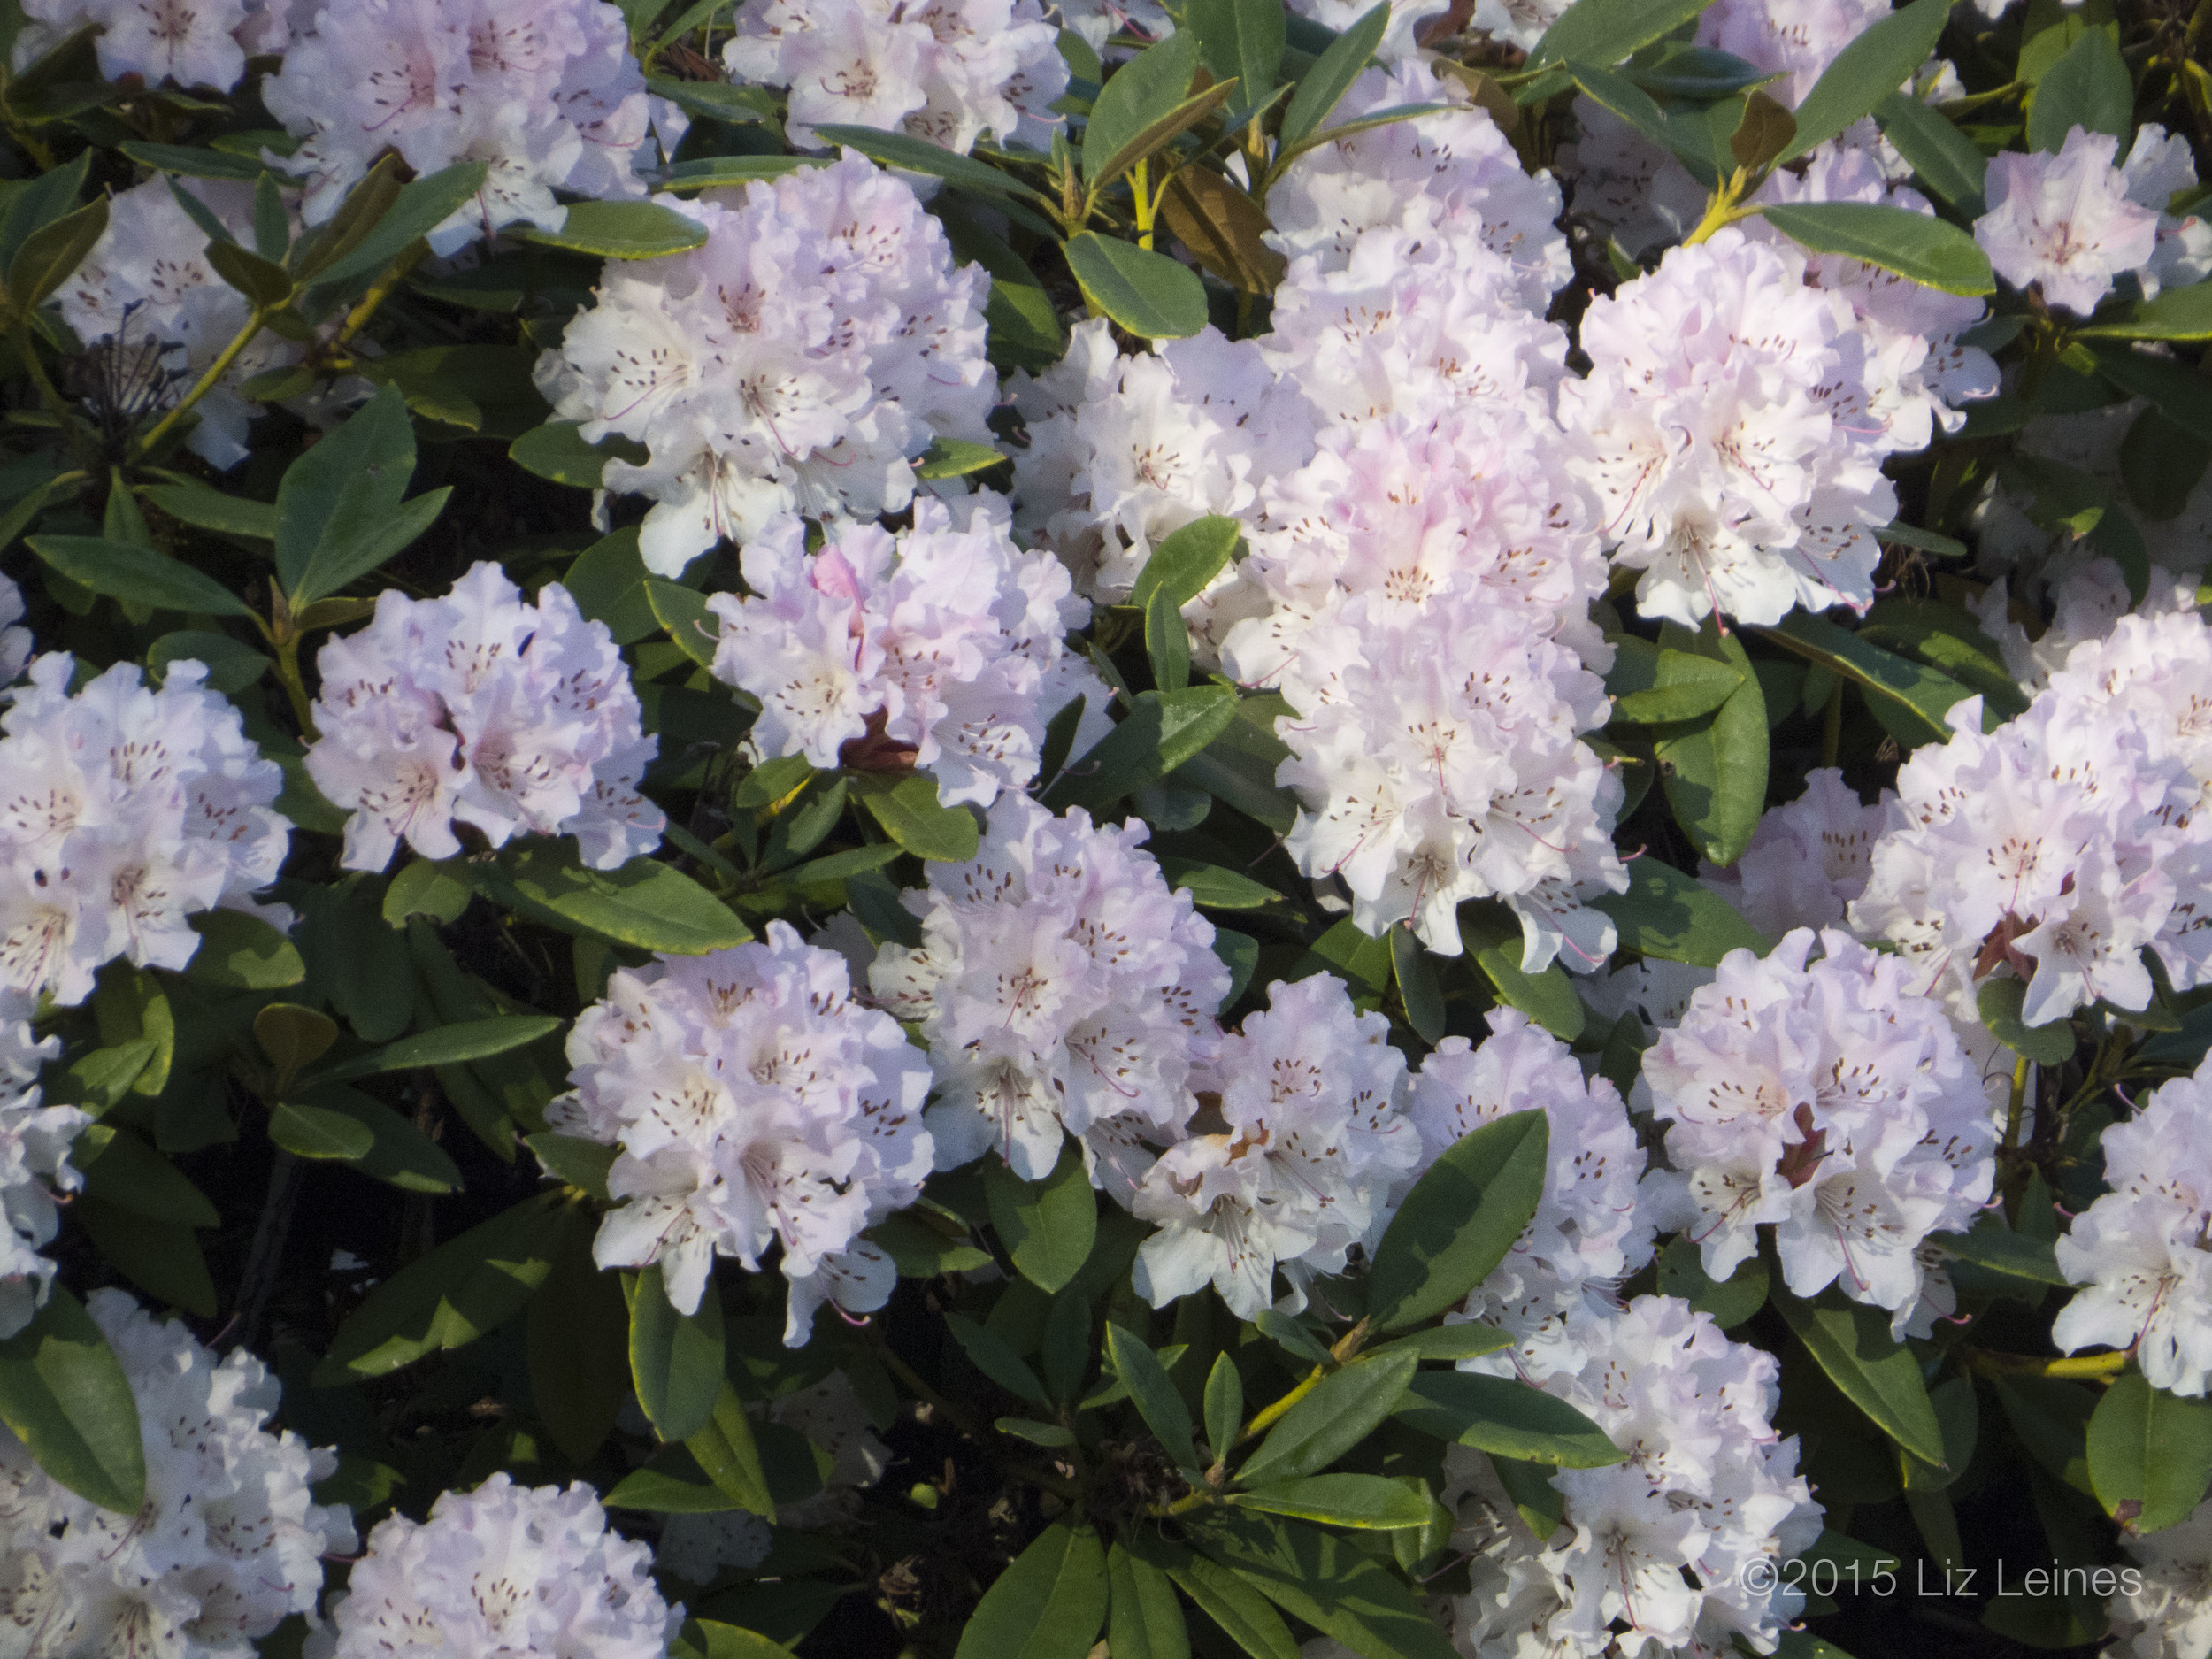 I wish I could share the lovely scent of these rhody blossoms! So wonderful!